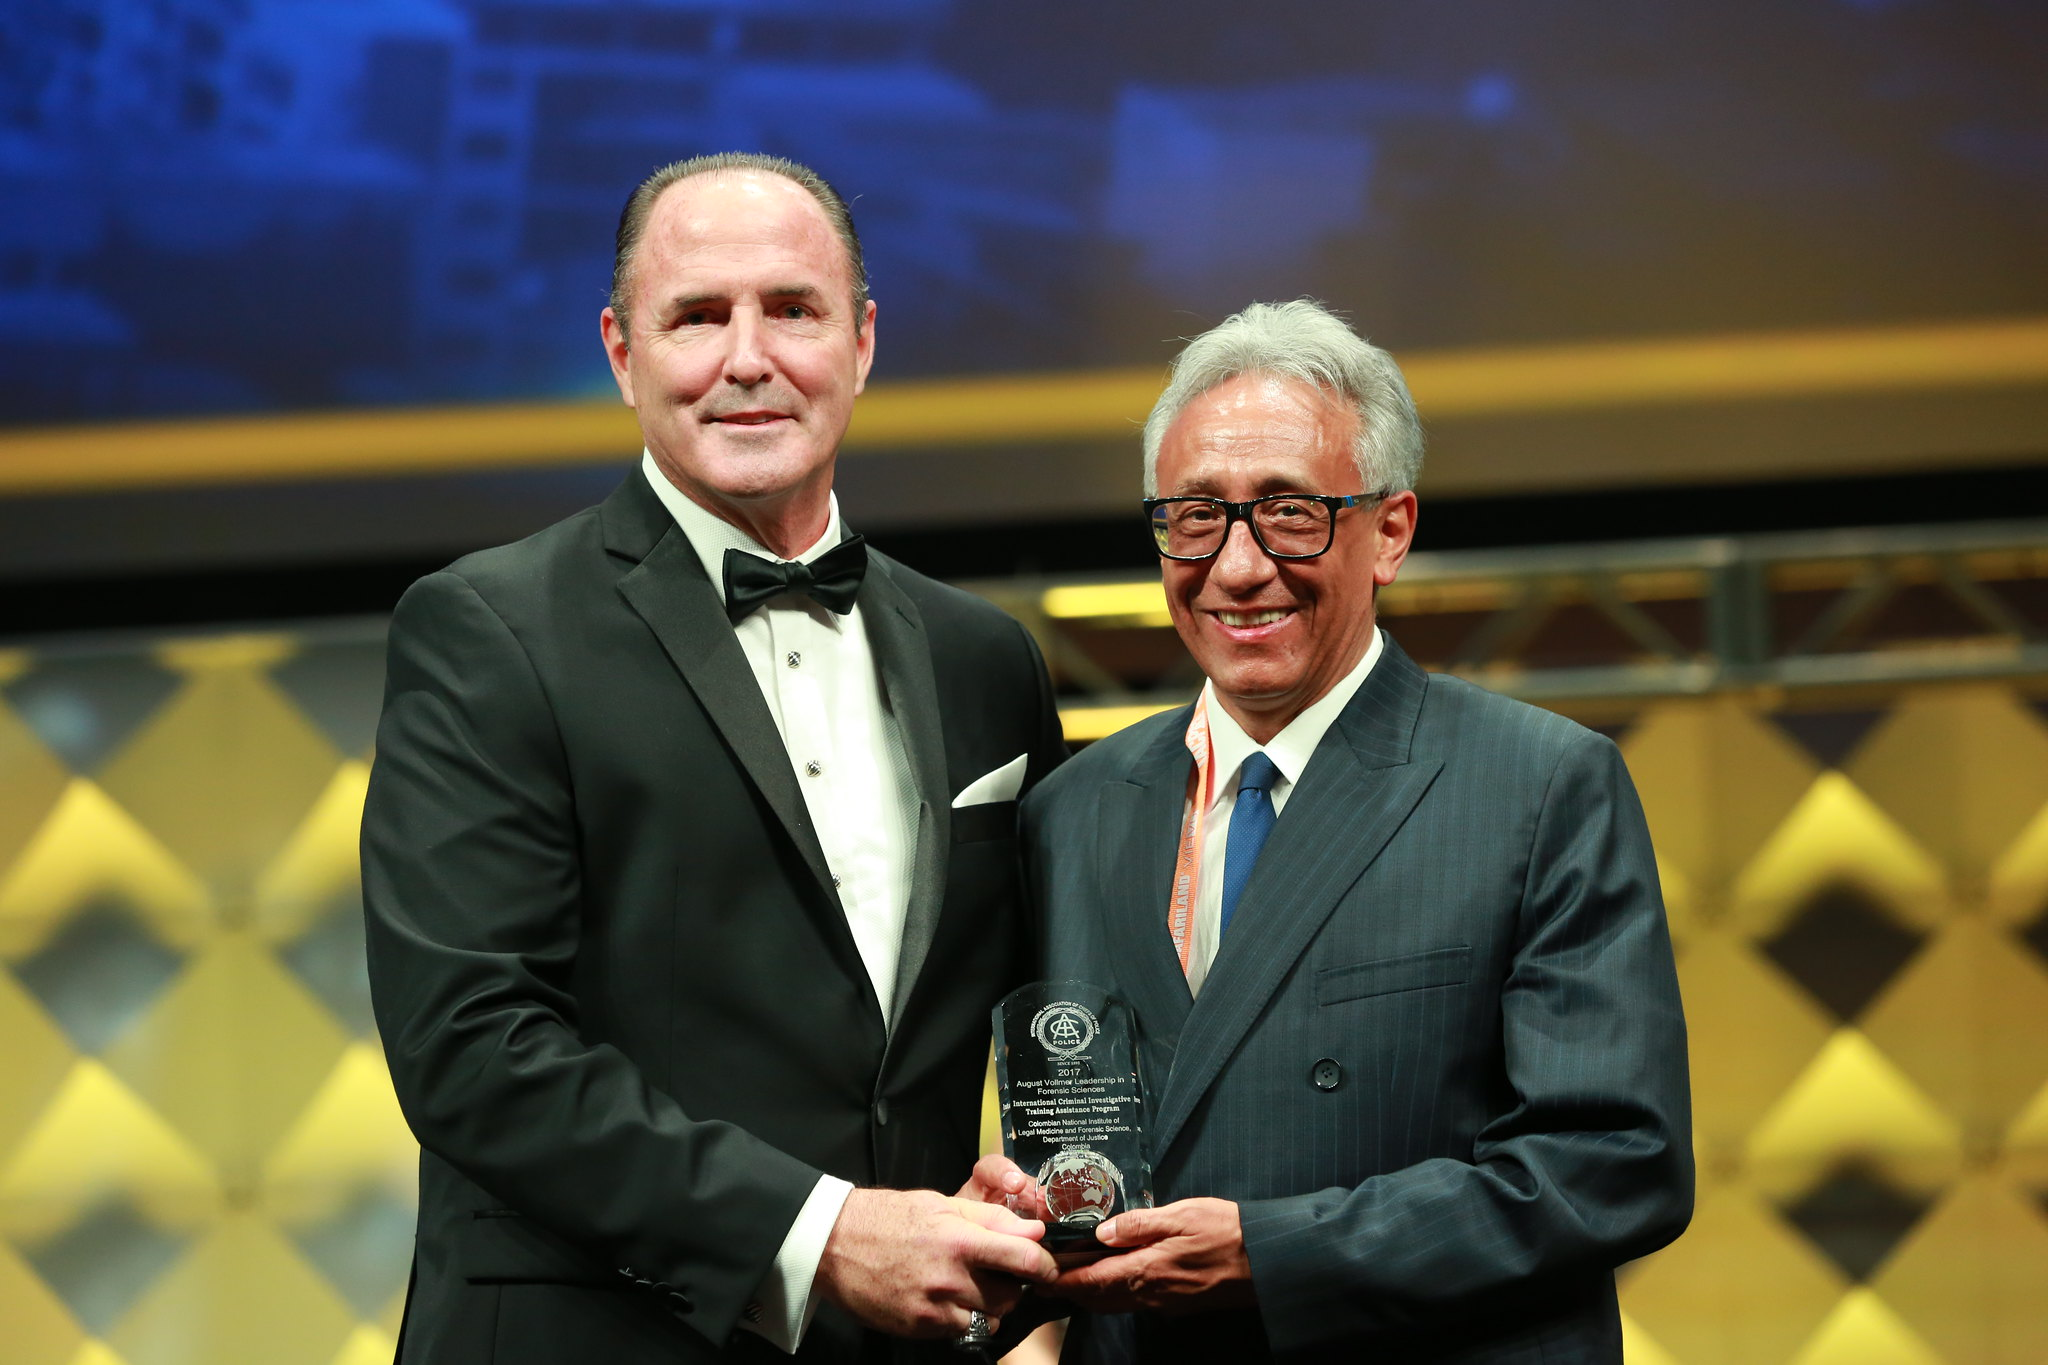 IACP August Vollmer Leadership in Forensic Science Award - Colombian National Institute